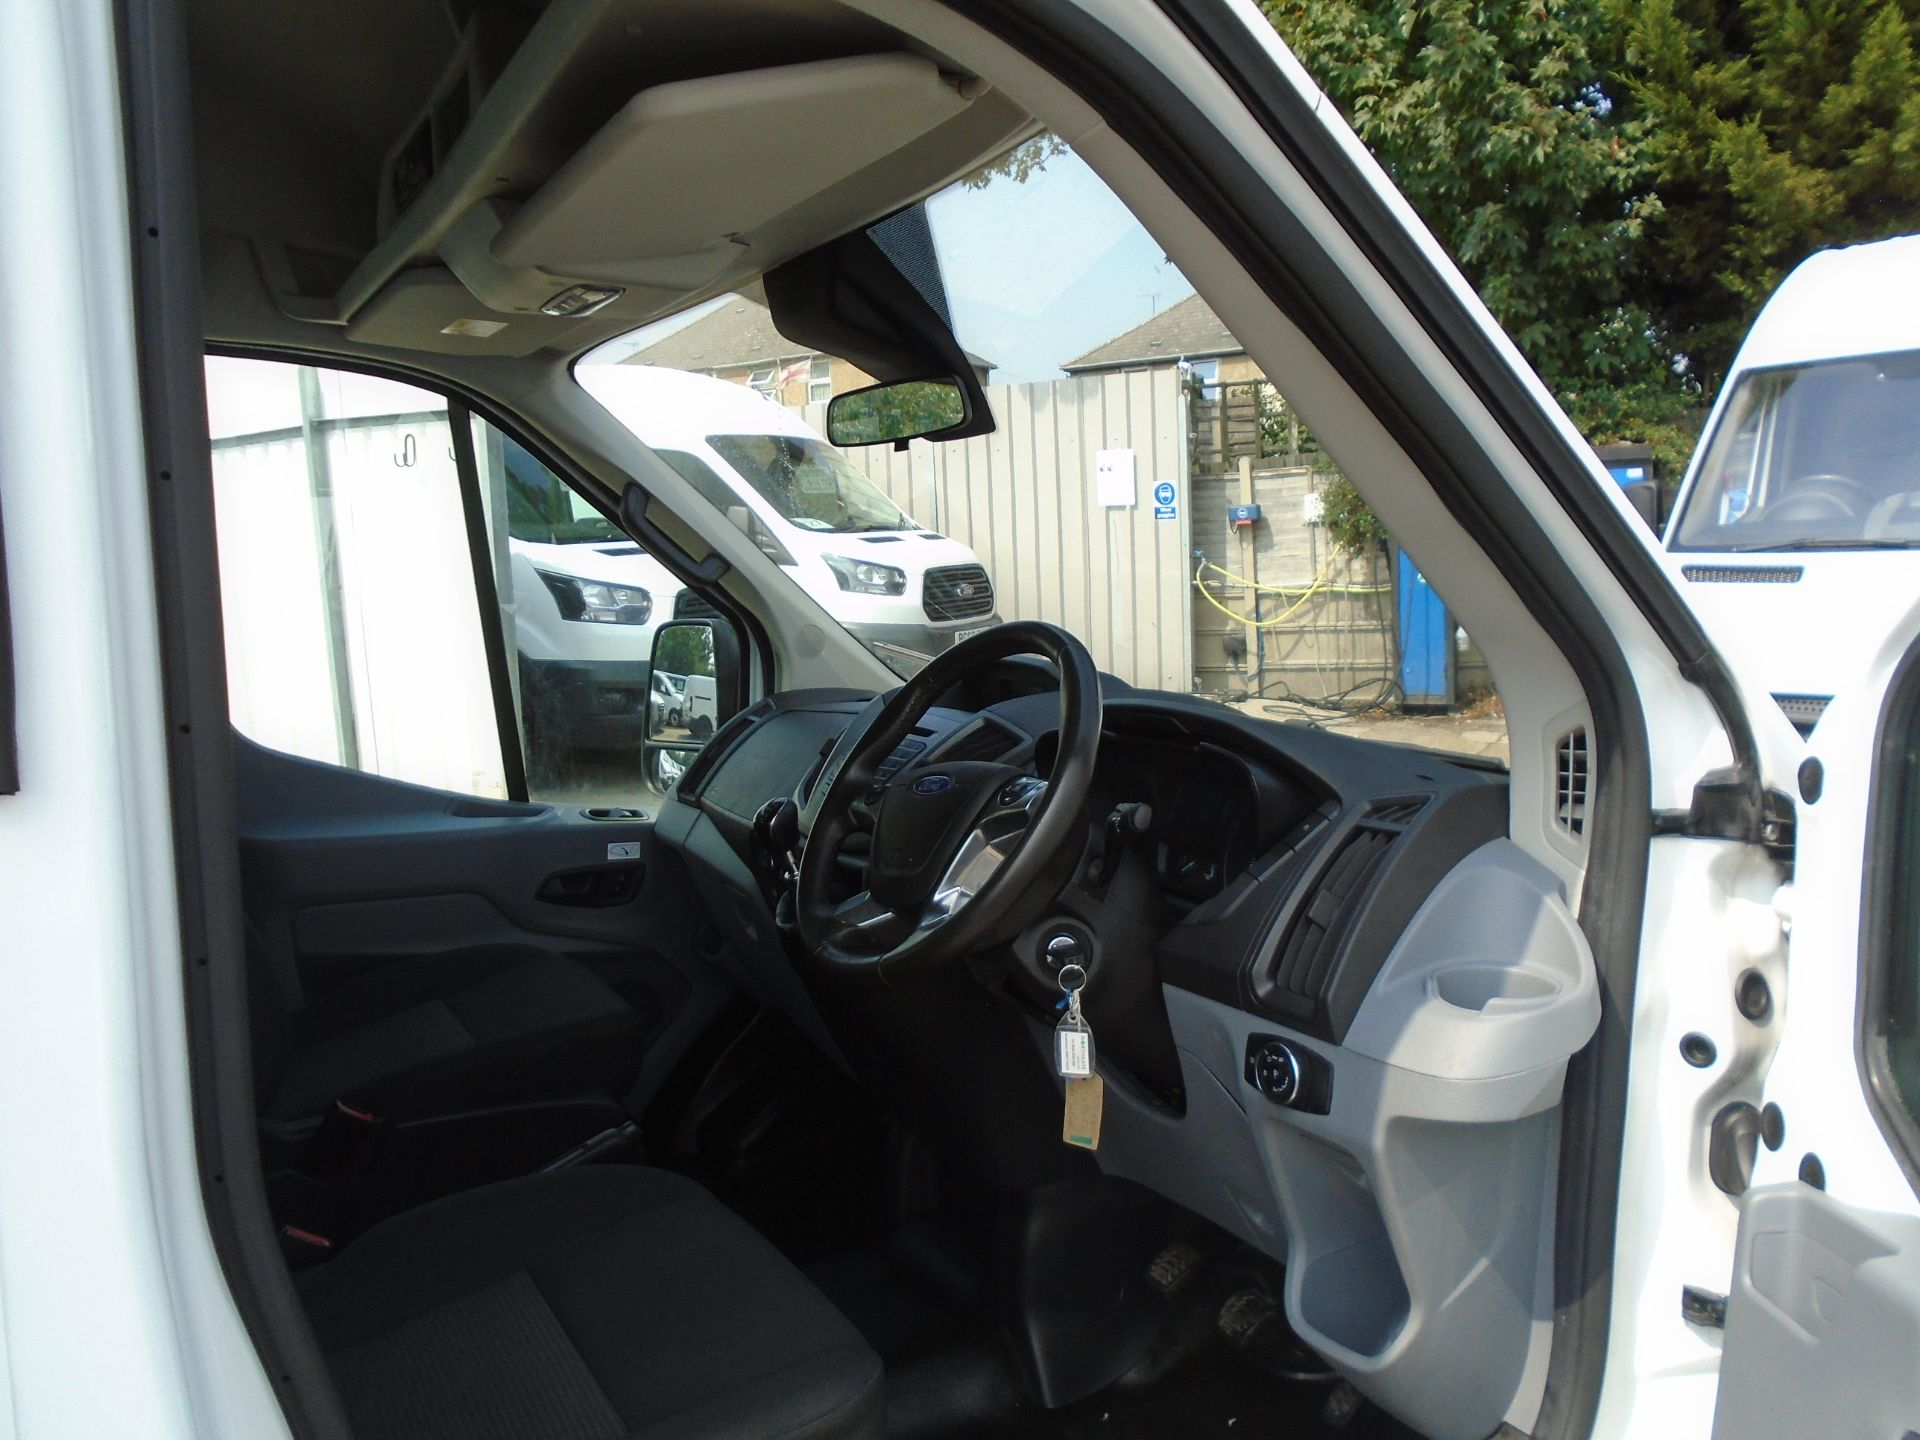 2016 Ford Transit 2.2 Tdci 125Ps H3 17 Seater (FP16UMV) Image 26